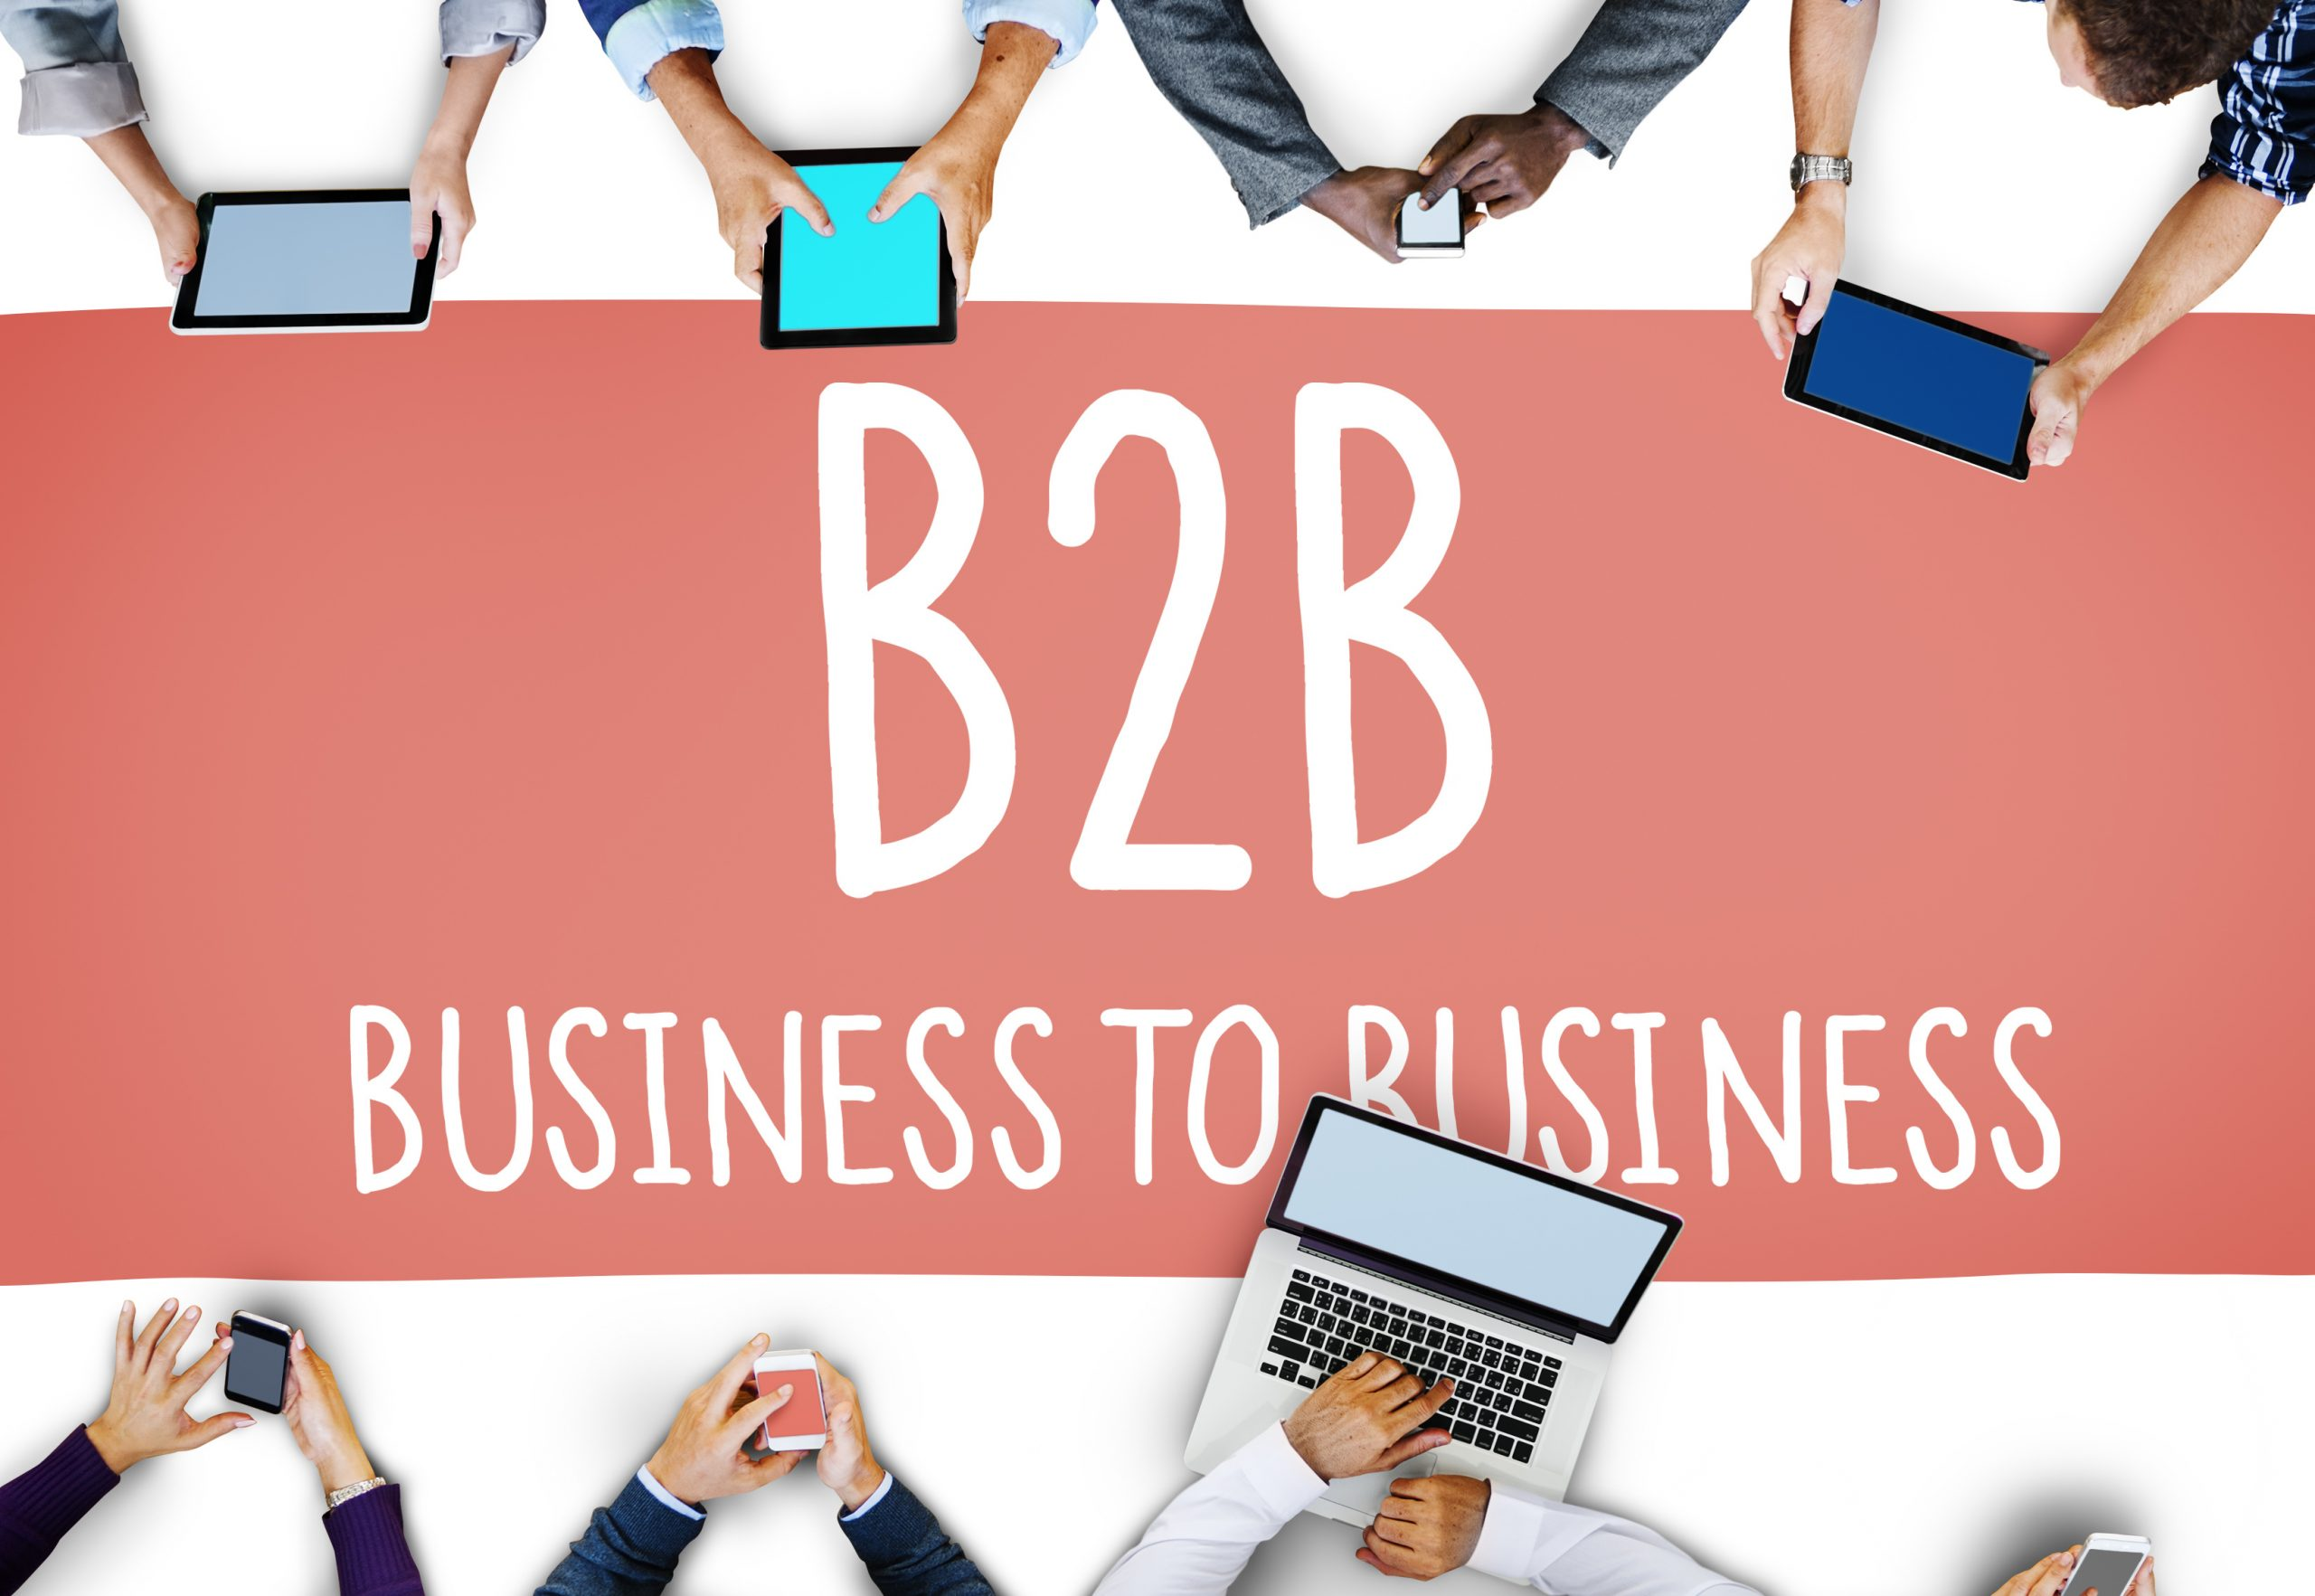 Why Is B2B Advertising Important?